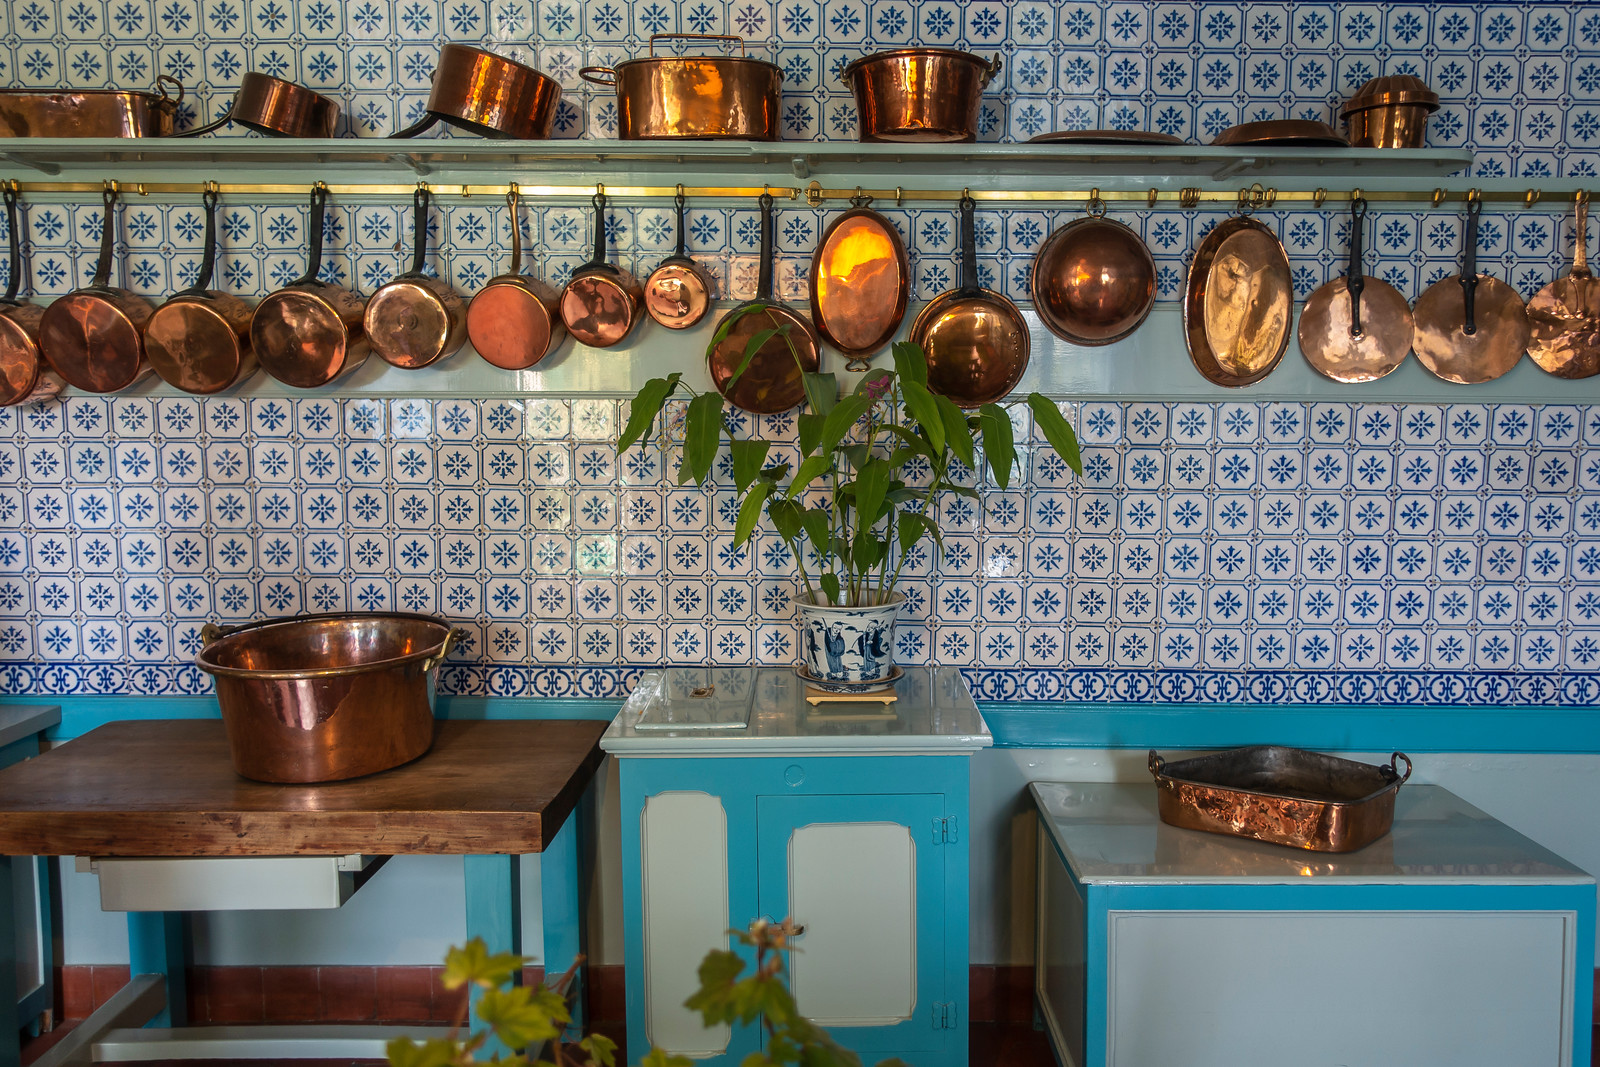 Monet's kitchen - copper pots of all shapes and sizes are are hanging on the walls decorated with blue Rouen tiles